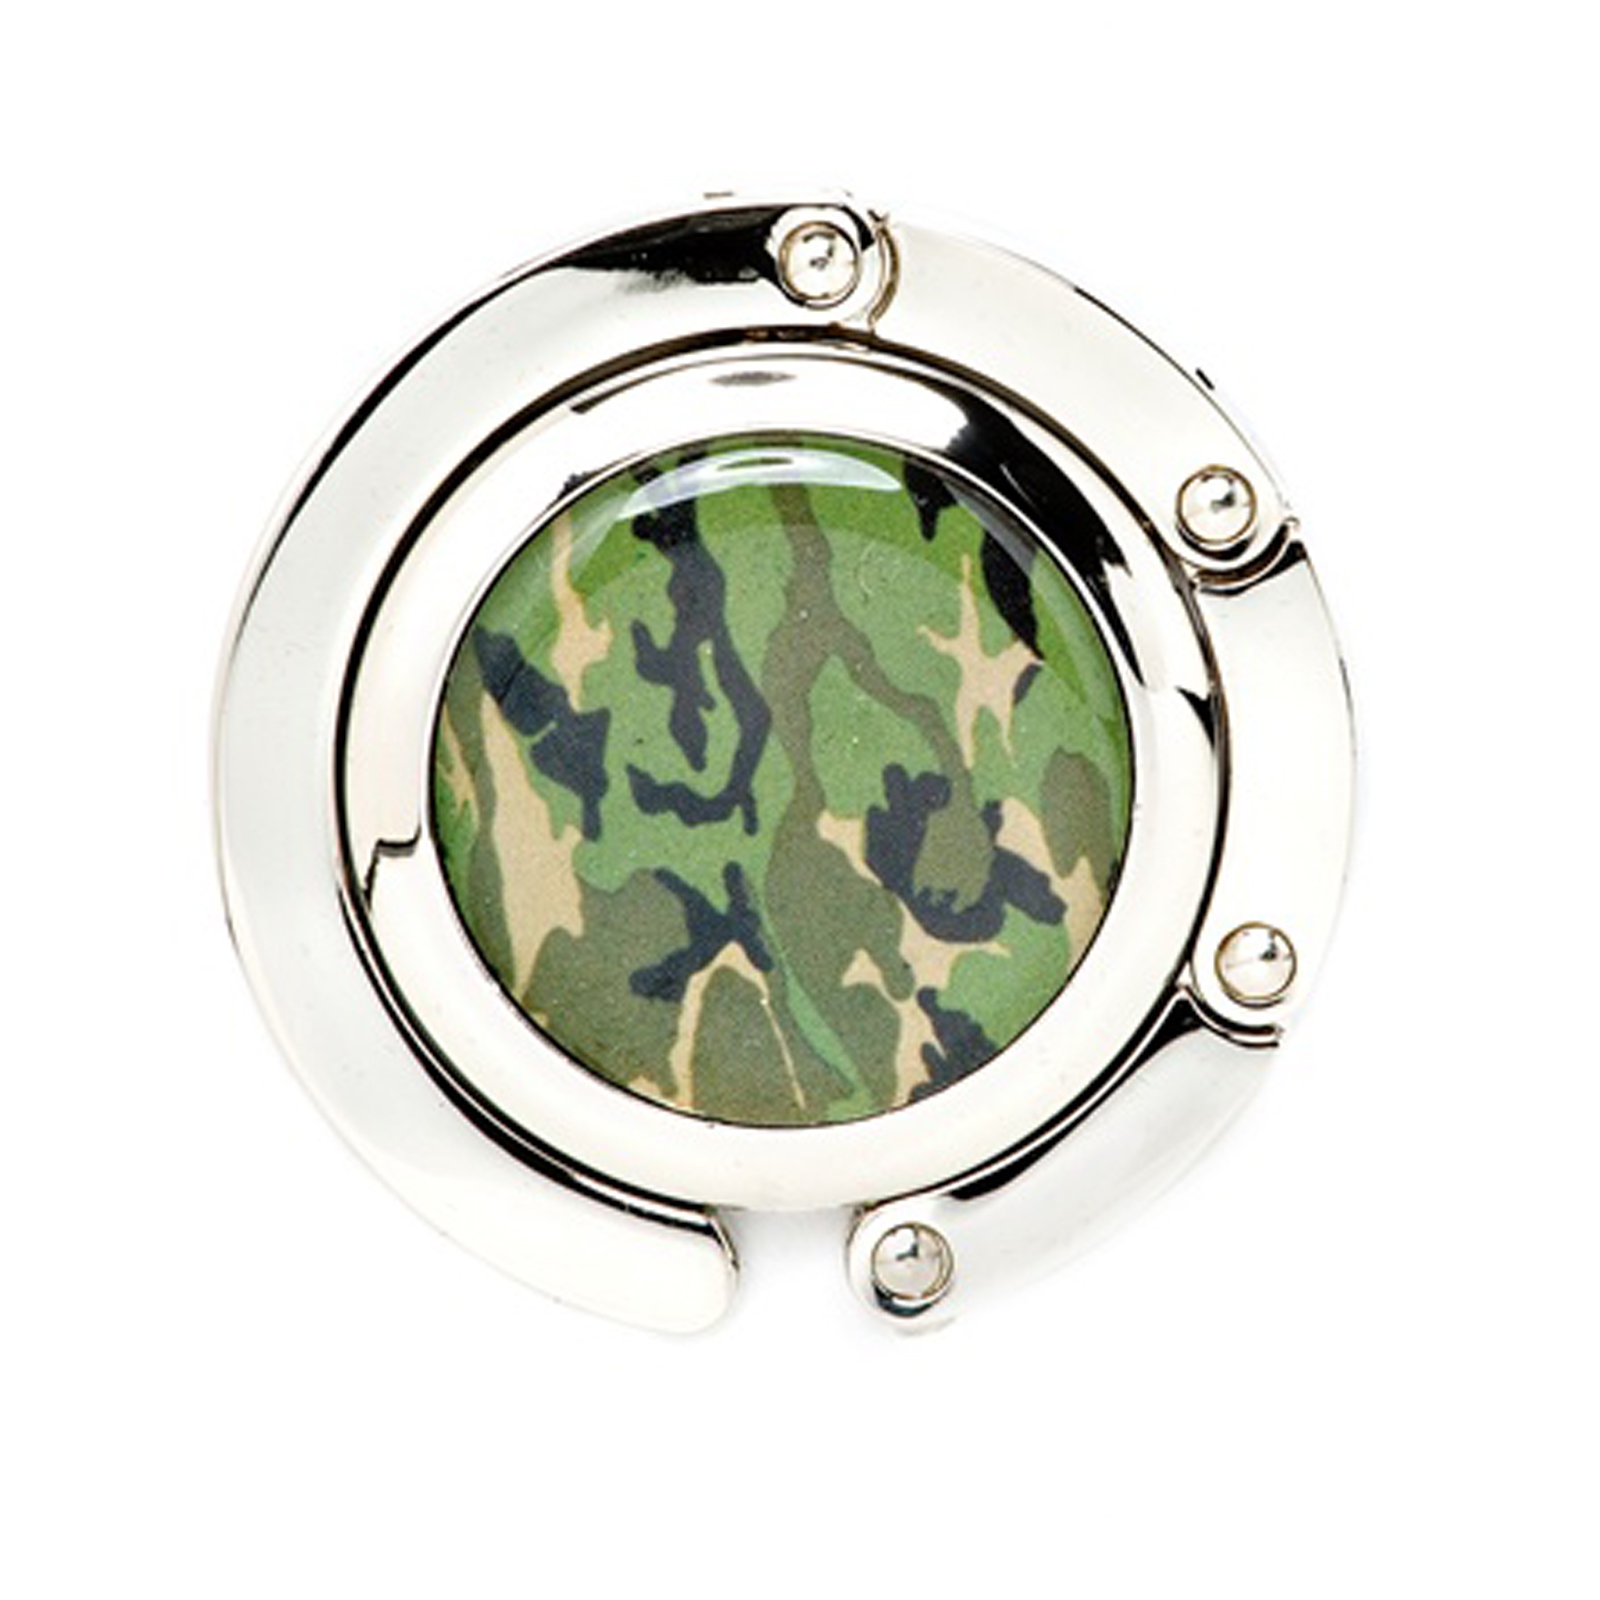 20 Pack Camouflage Print Fold-Up Purse Hook Hanger Party Gift Favor